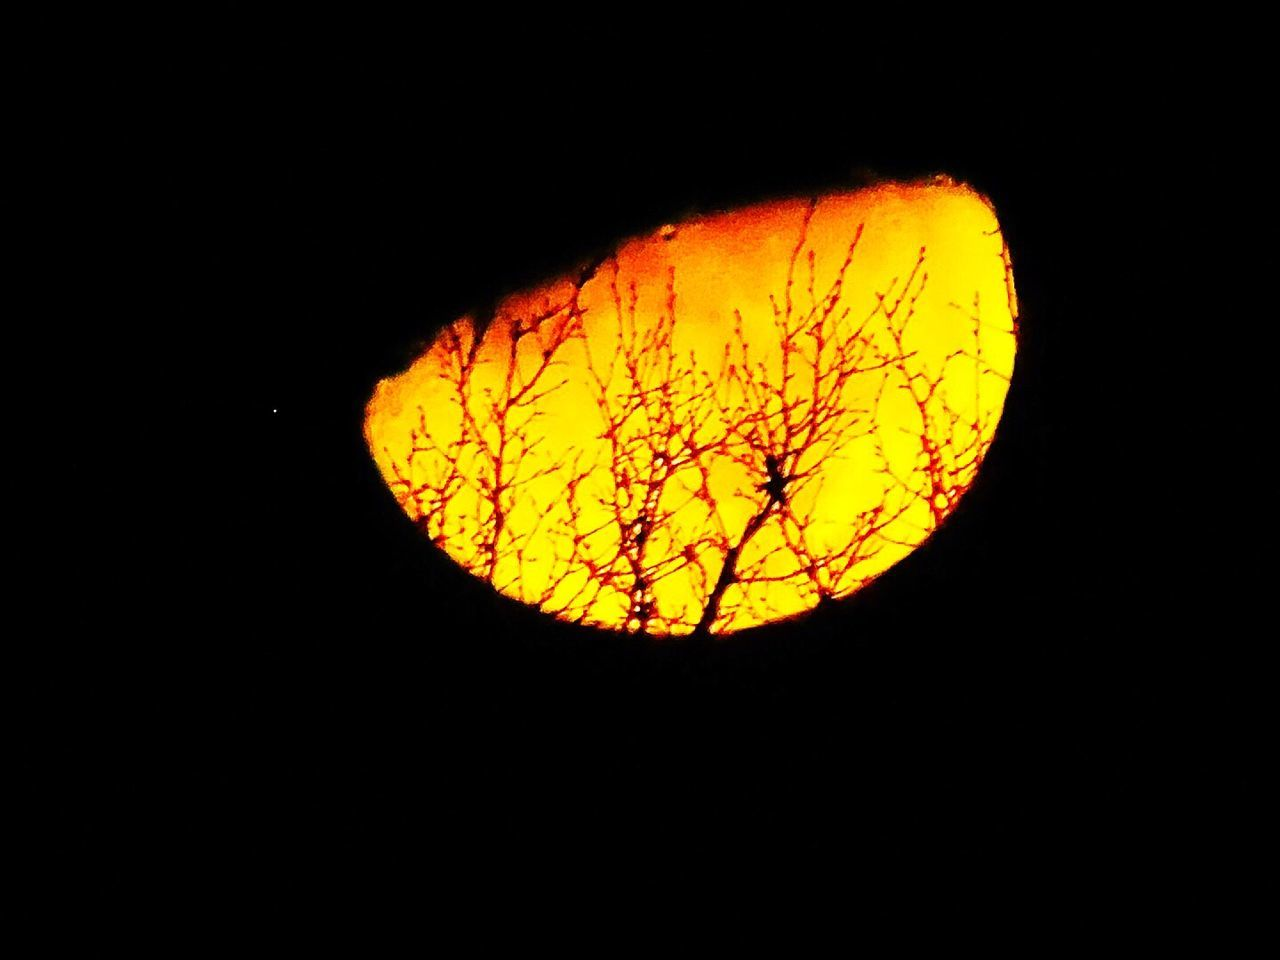 moon, night, yellow, burning, heat - temperature, flame, no people, beauty in nature, scenics, nature, outdoors, astronomy, close-up, sky